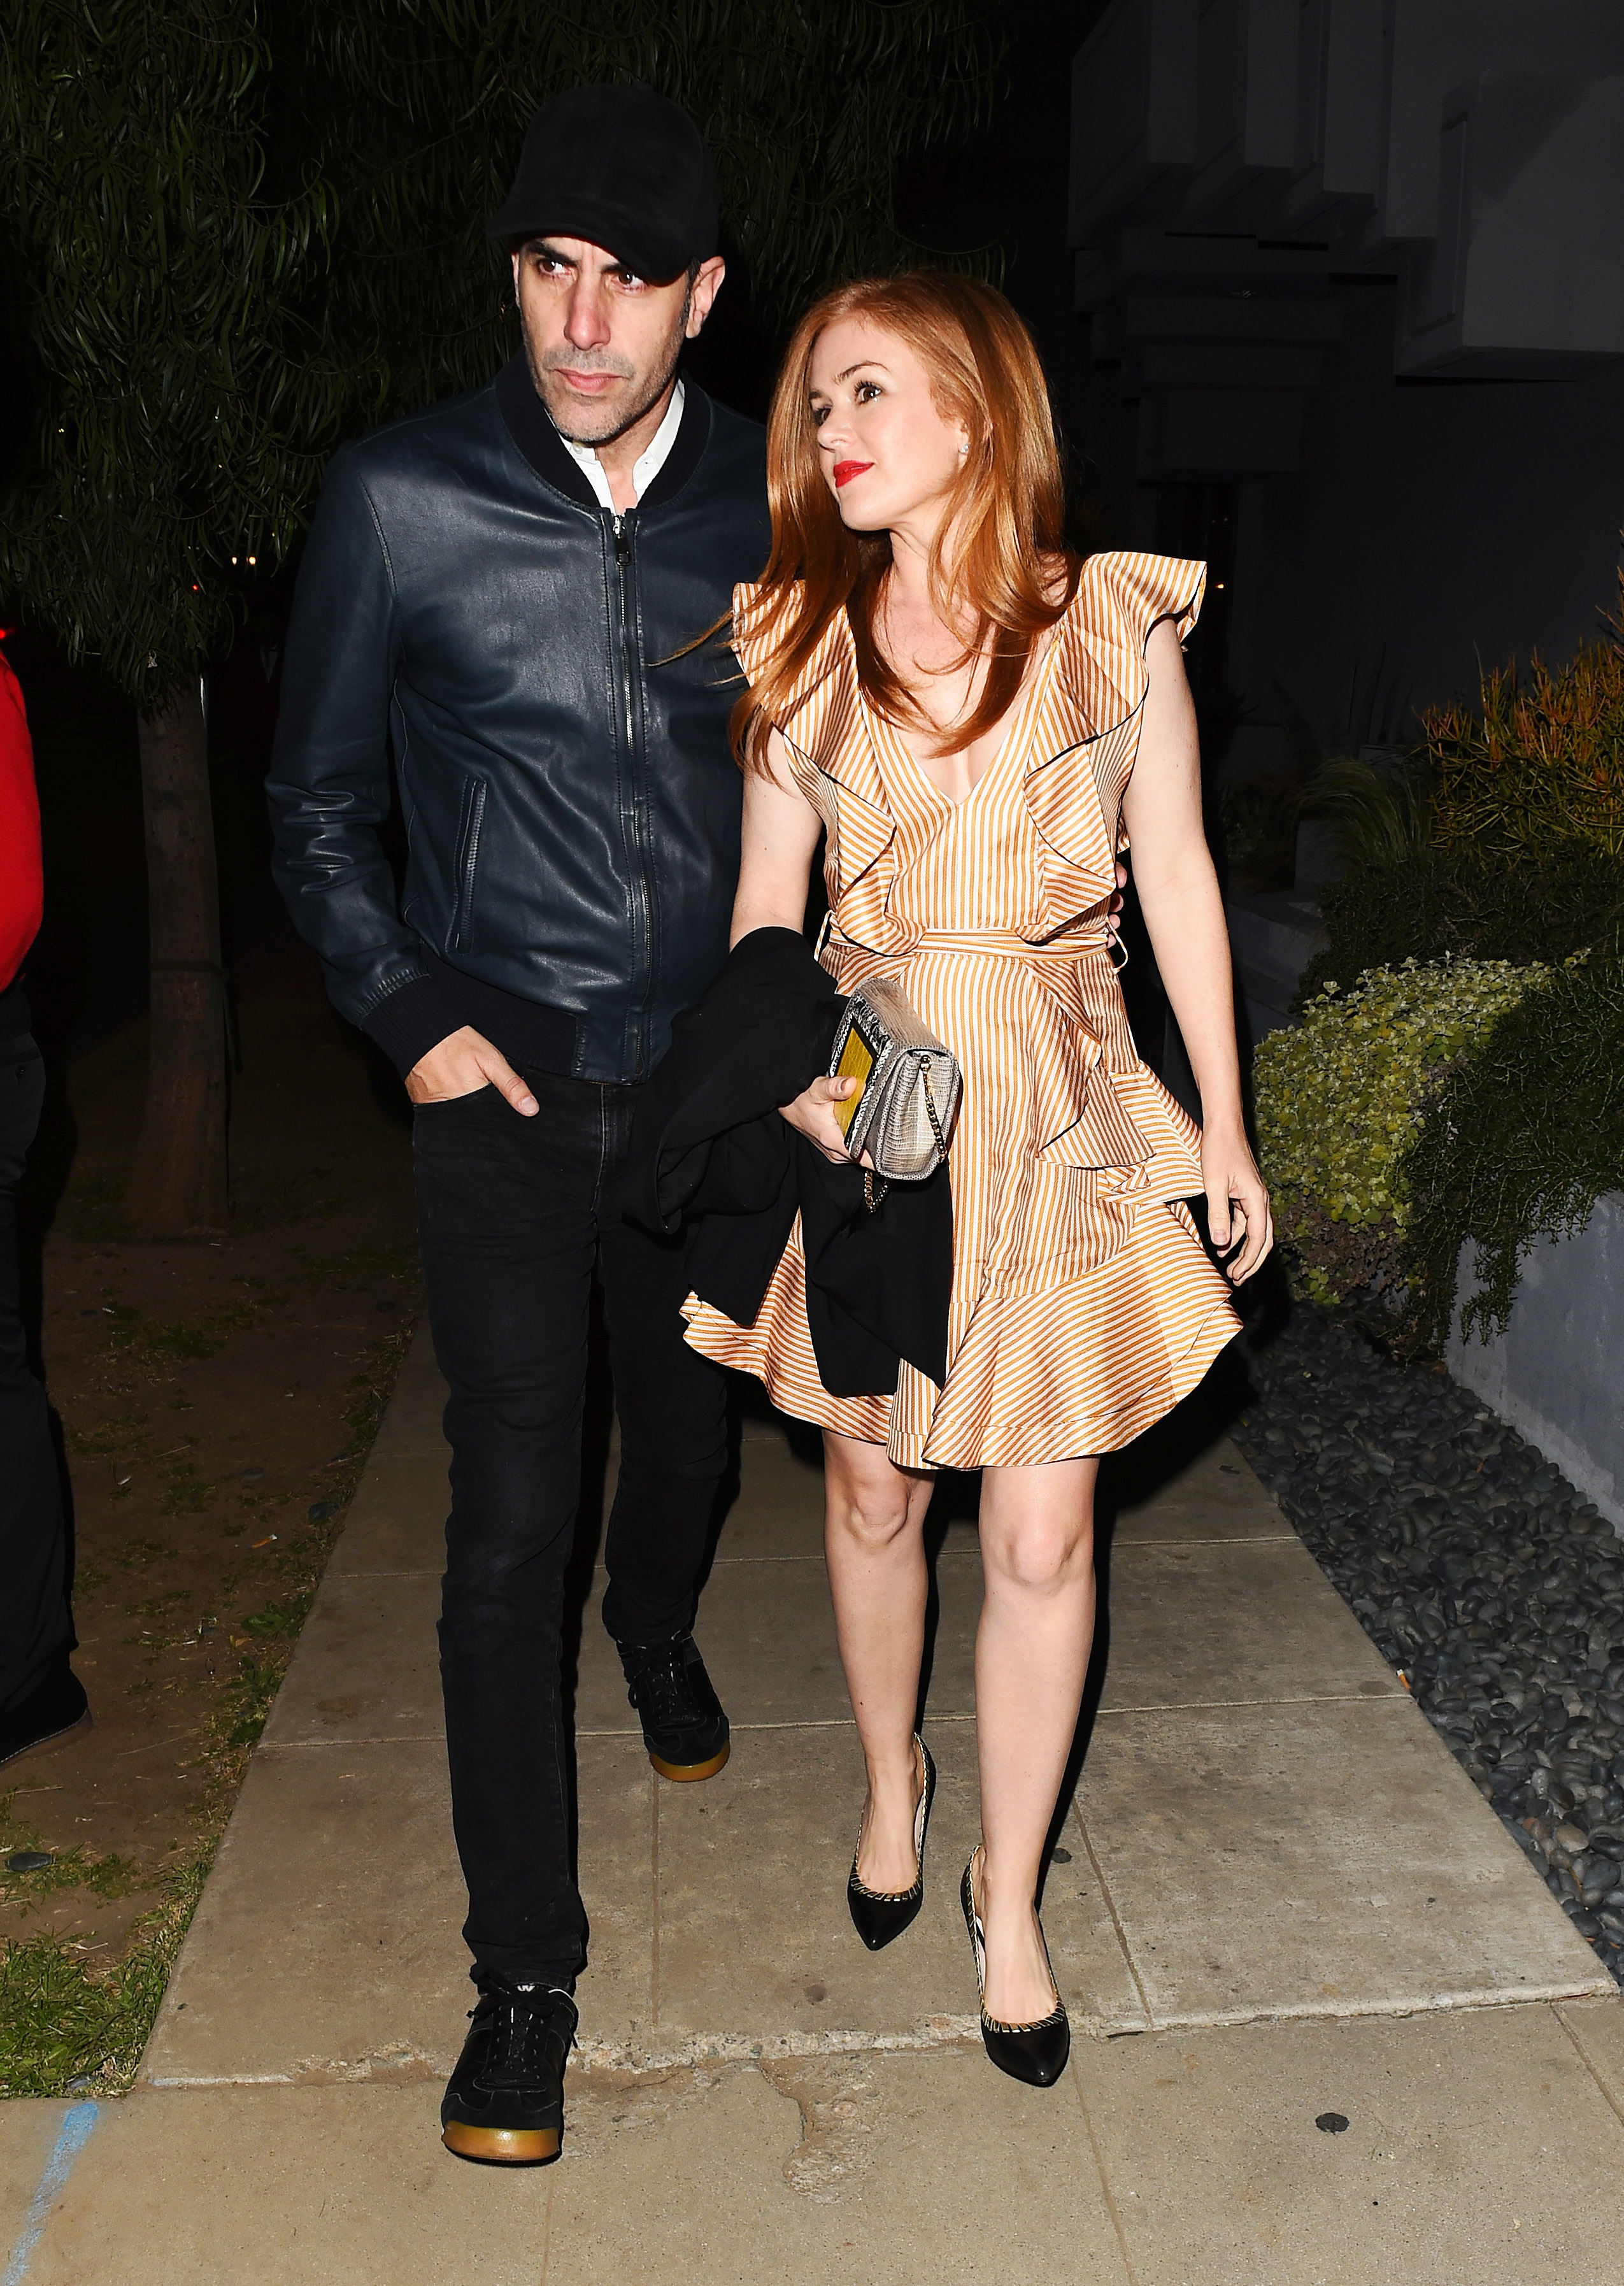 Sacha Baron Cohen and Isla Fisher arrive at Elton John's 70th birthday party at RED Studios Hollywood in Los Angeles on March 25, 2017.